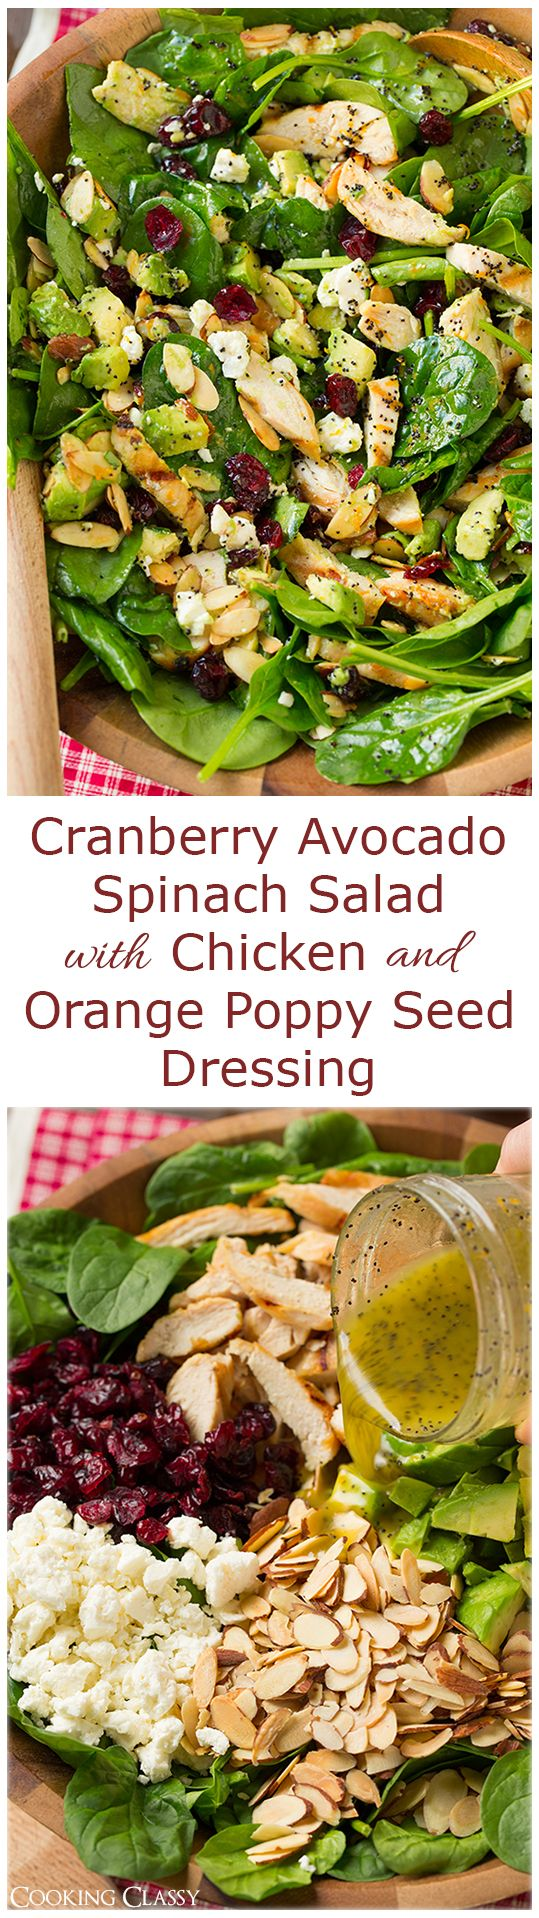 Cranberry Avocado Spinach Salad with Chicken and Orange Poppy Seed Dressing - this flavorful salad is one of my new favorites! LOVED it!! Easy adjusted to paleo.